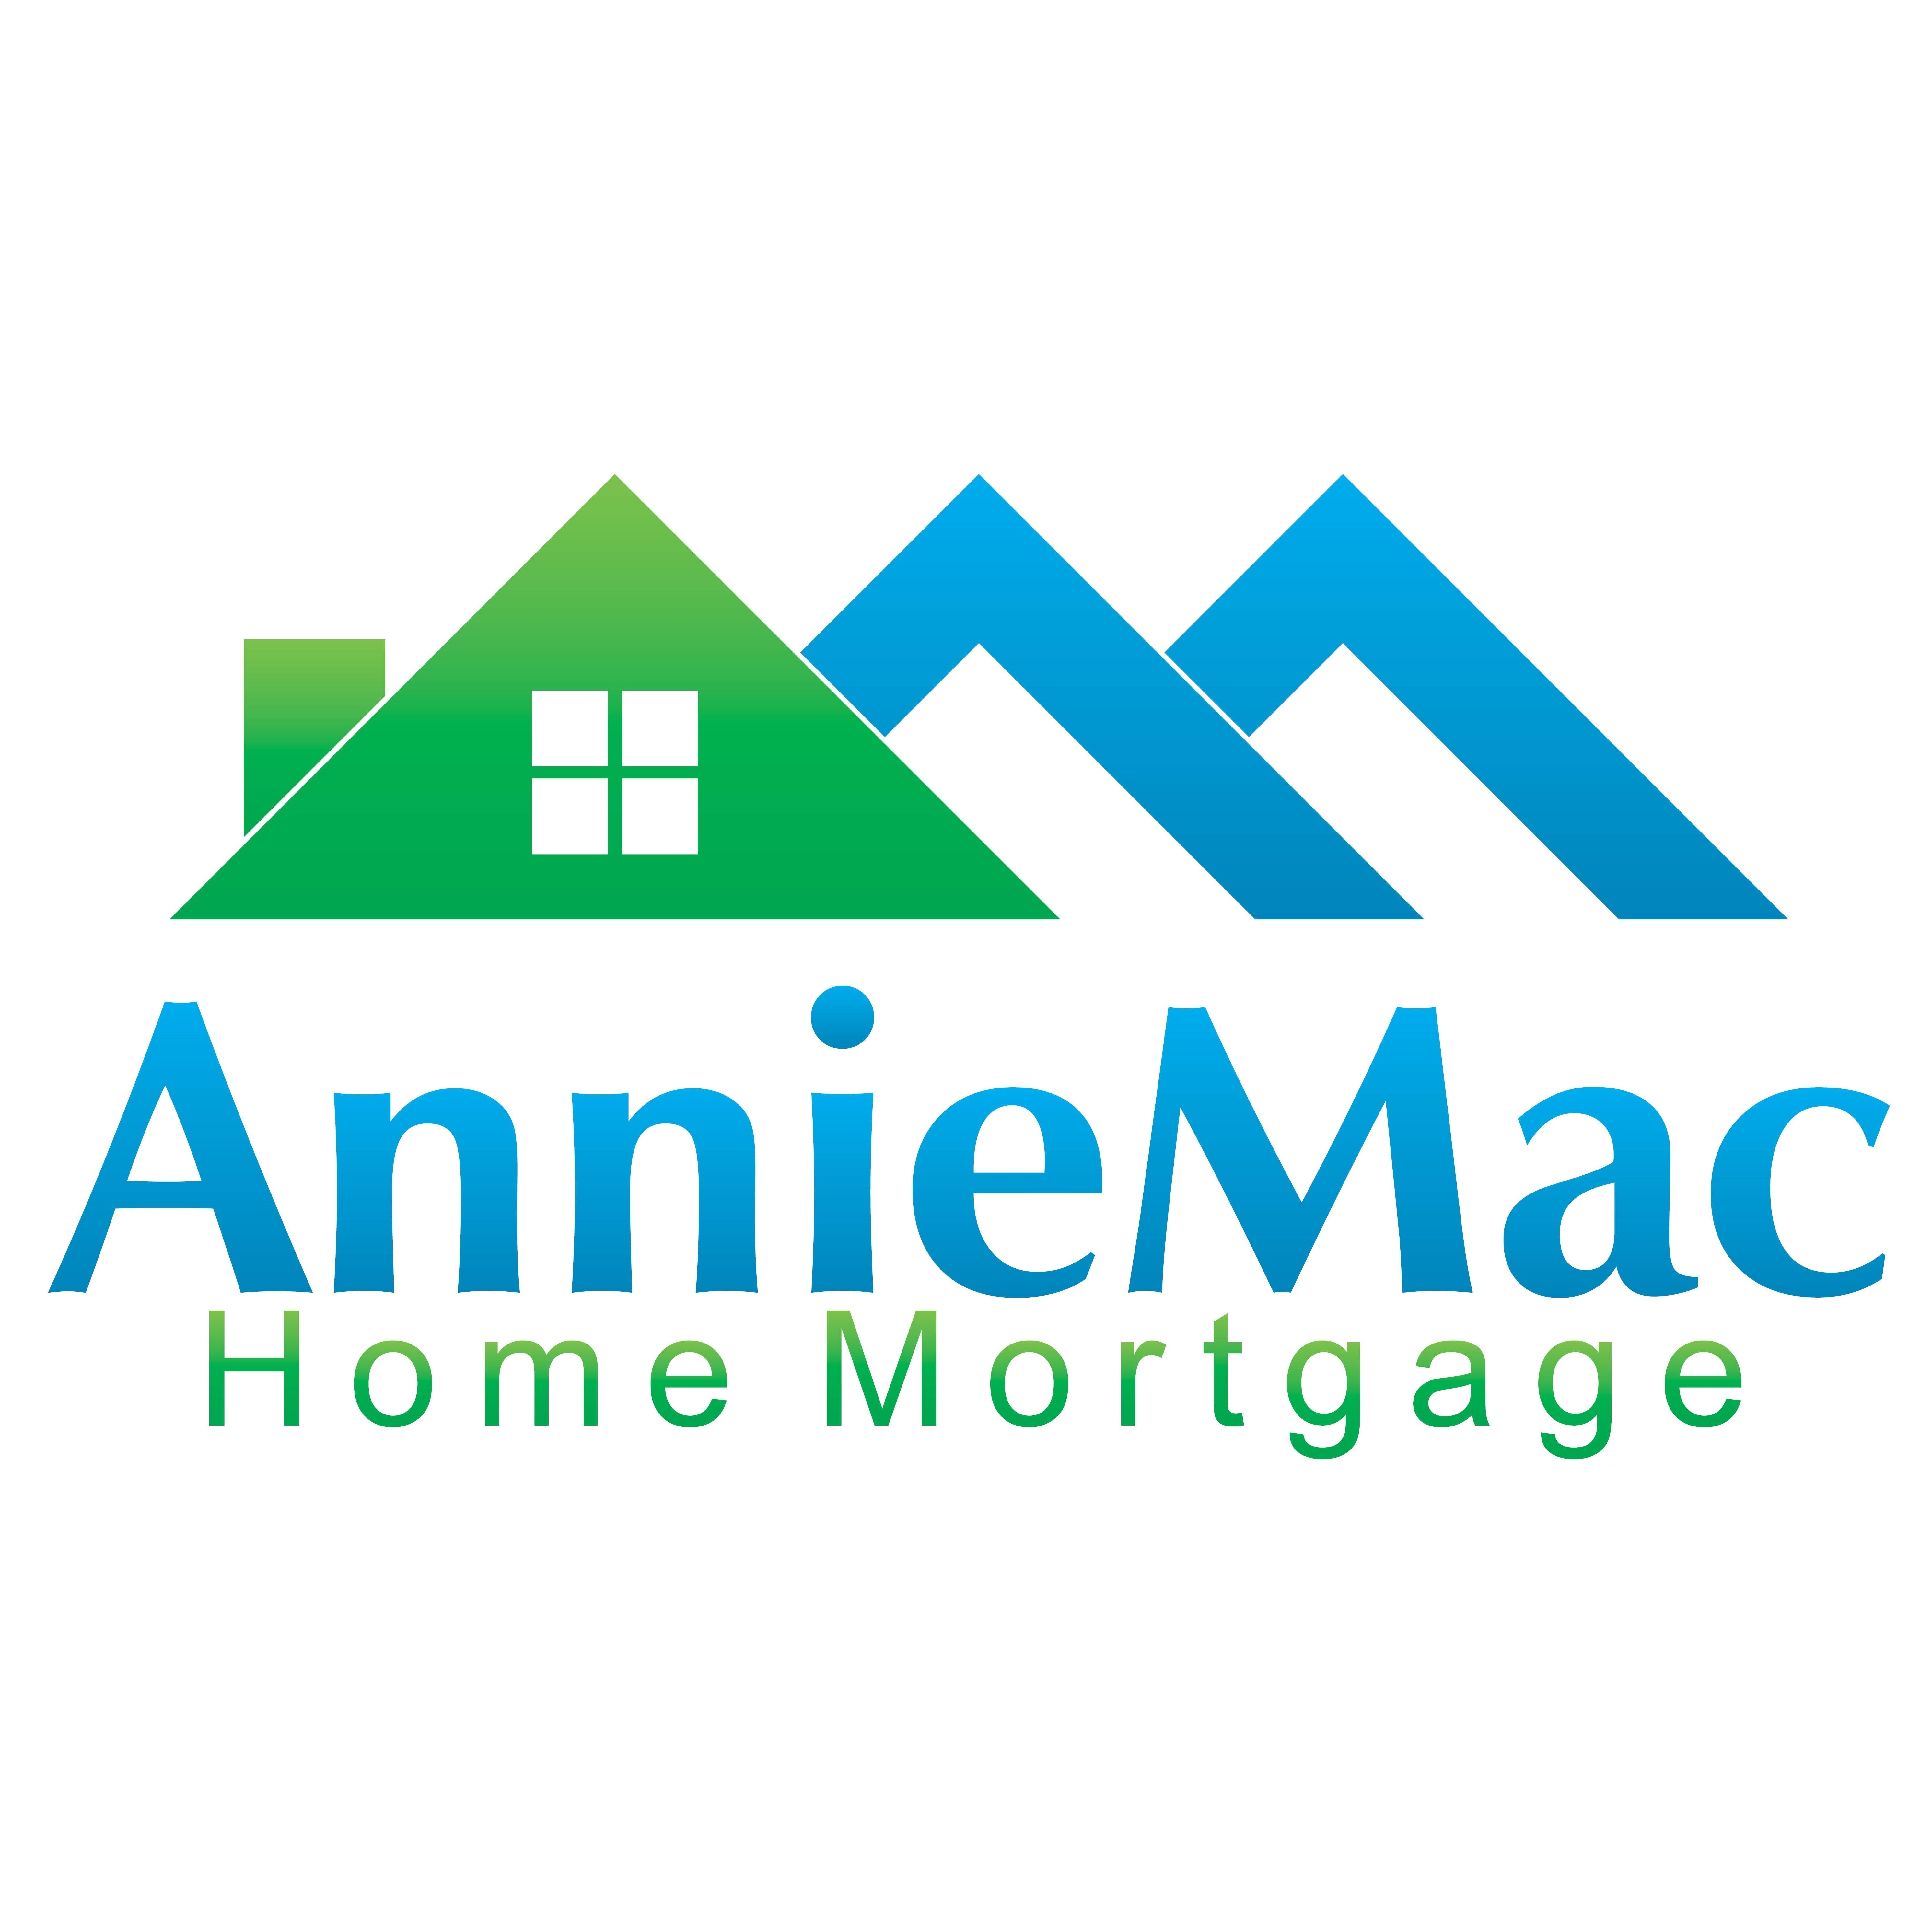 AnnieMac Home Mortgage - Loan Agency - Greenville, SC 29615